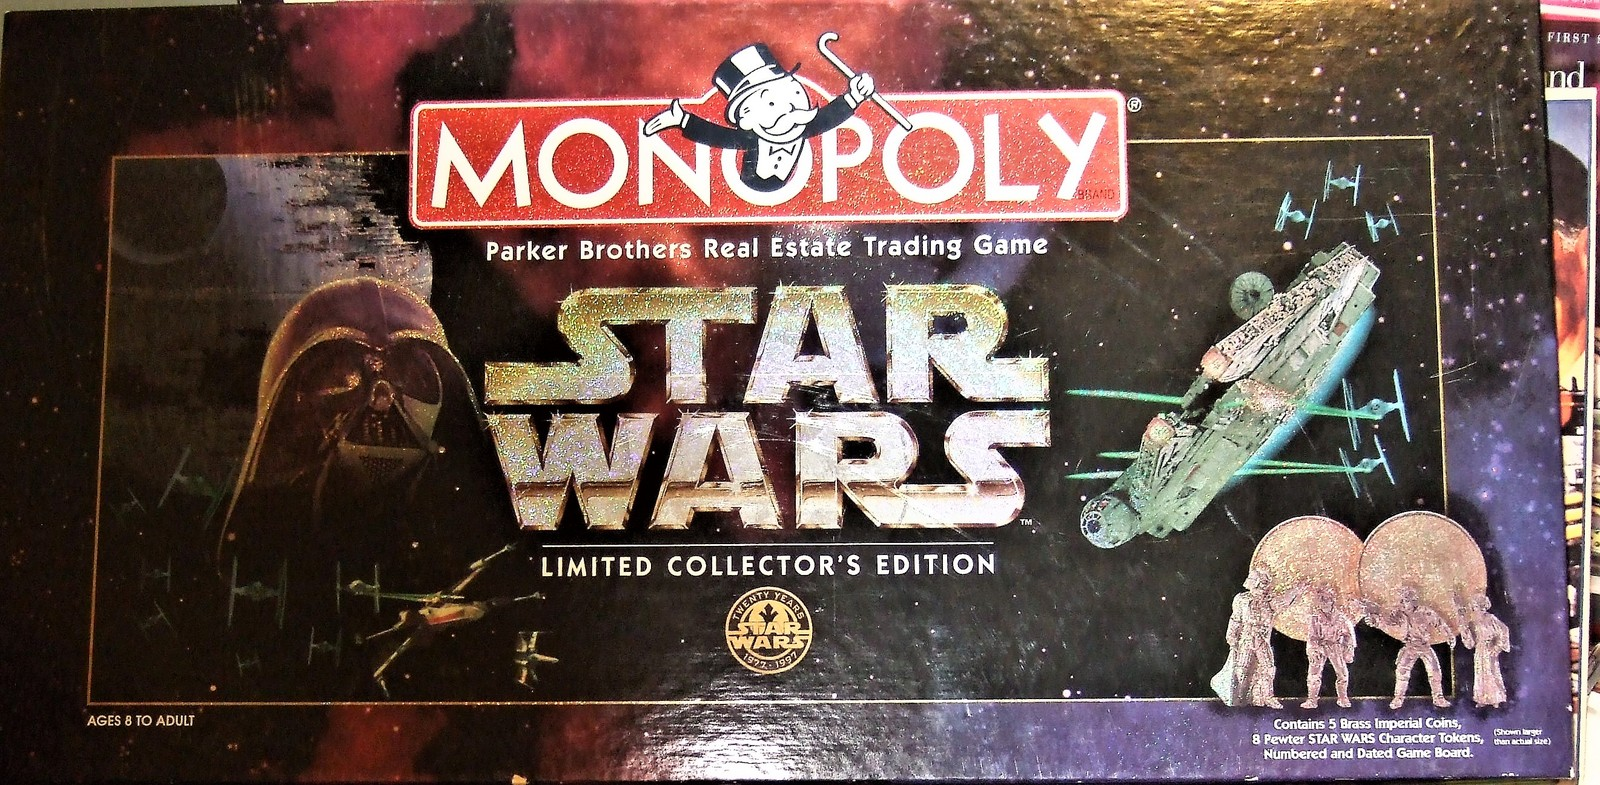 Monopoly Game - Star Wars Limited Collector's Edition